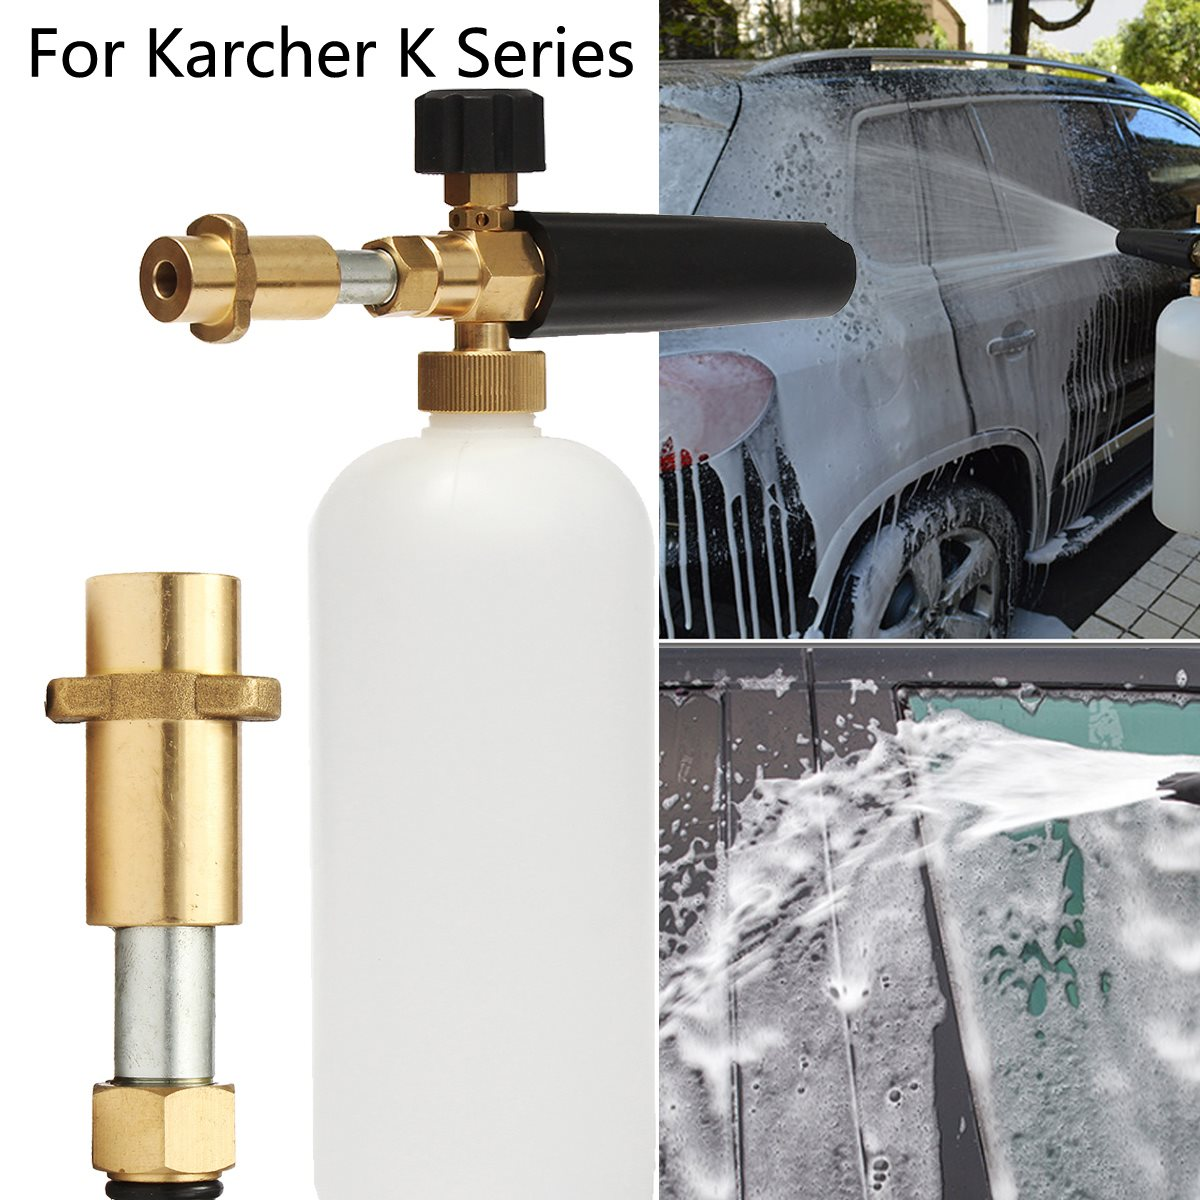 Pressure Sprayer Car Washer Compatible Foam Bottle For Karcher K Series